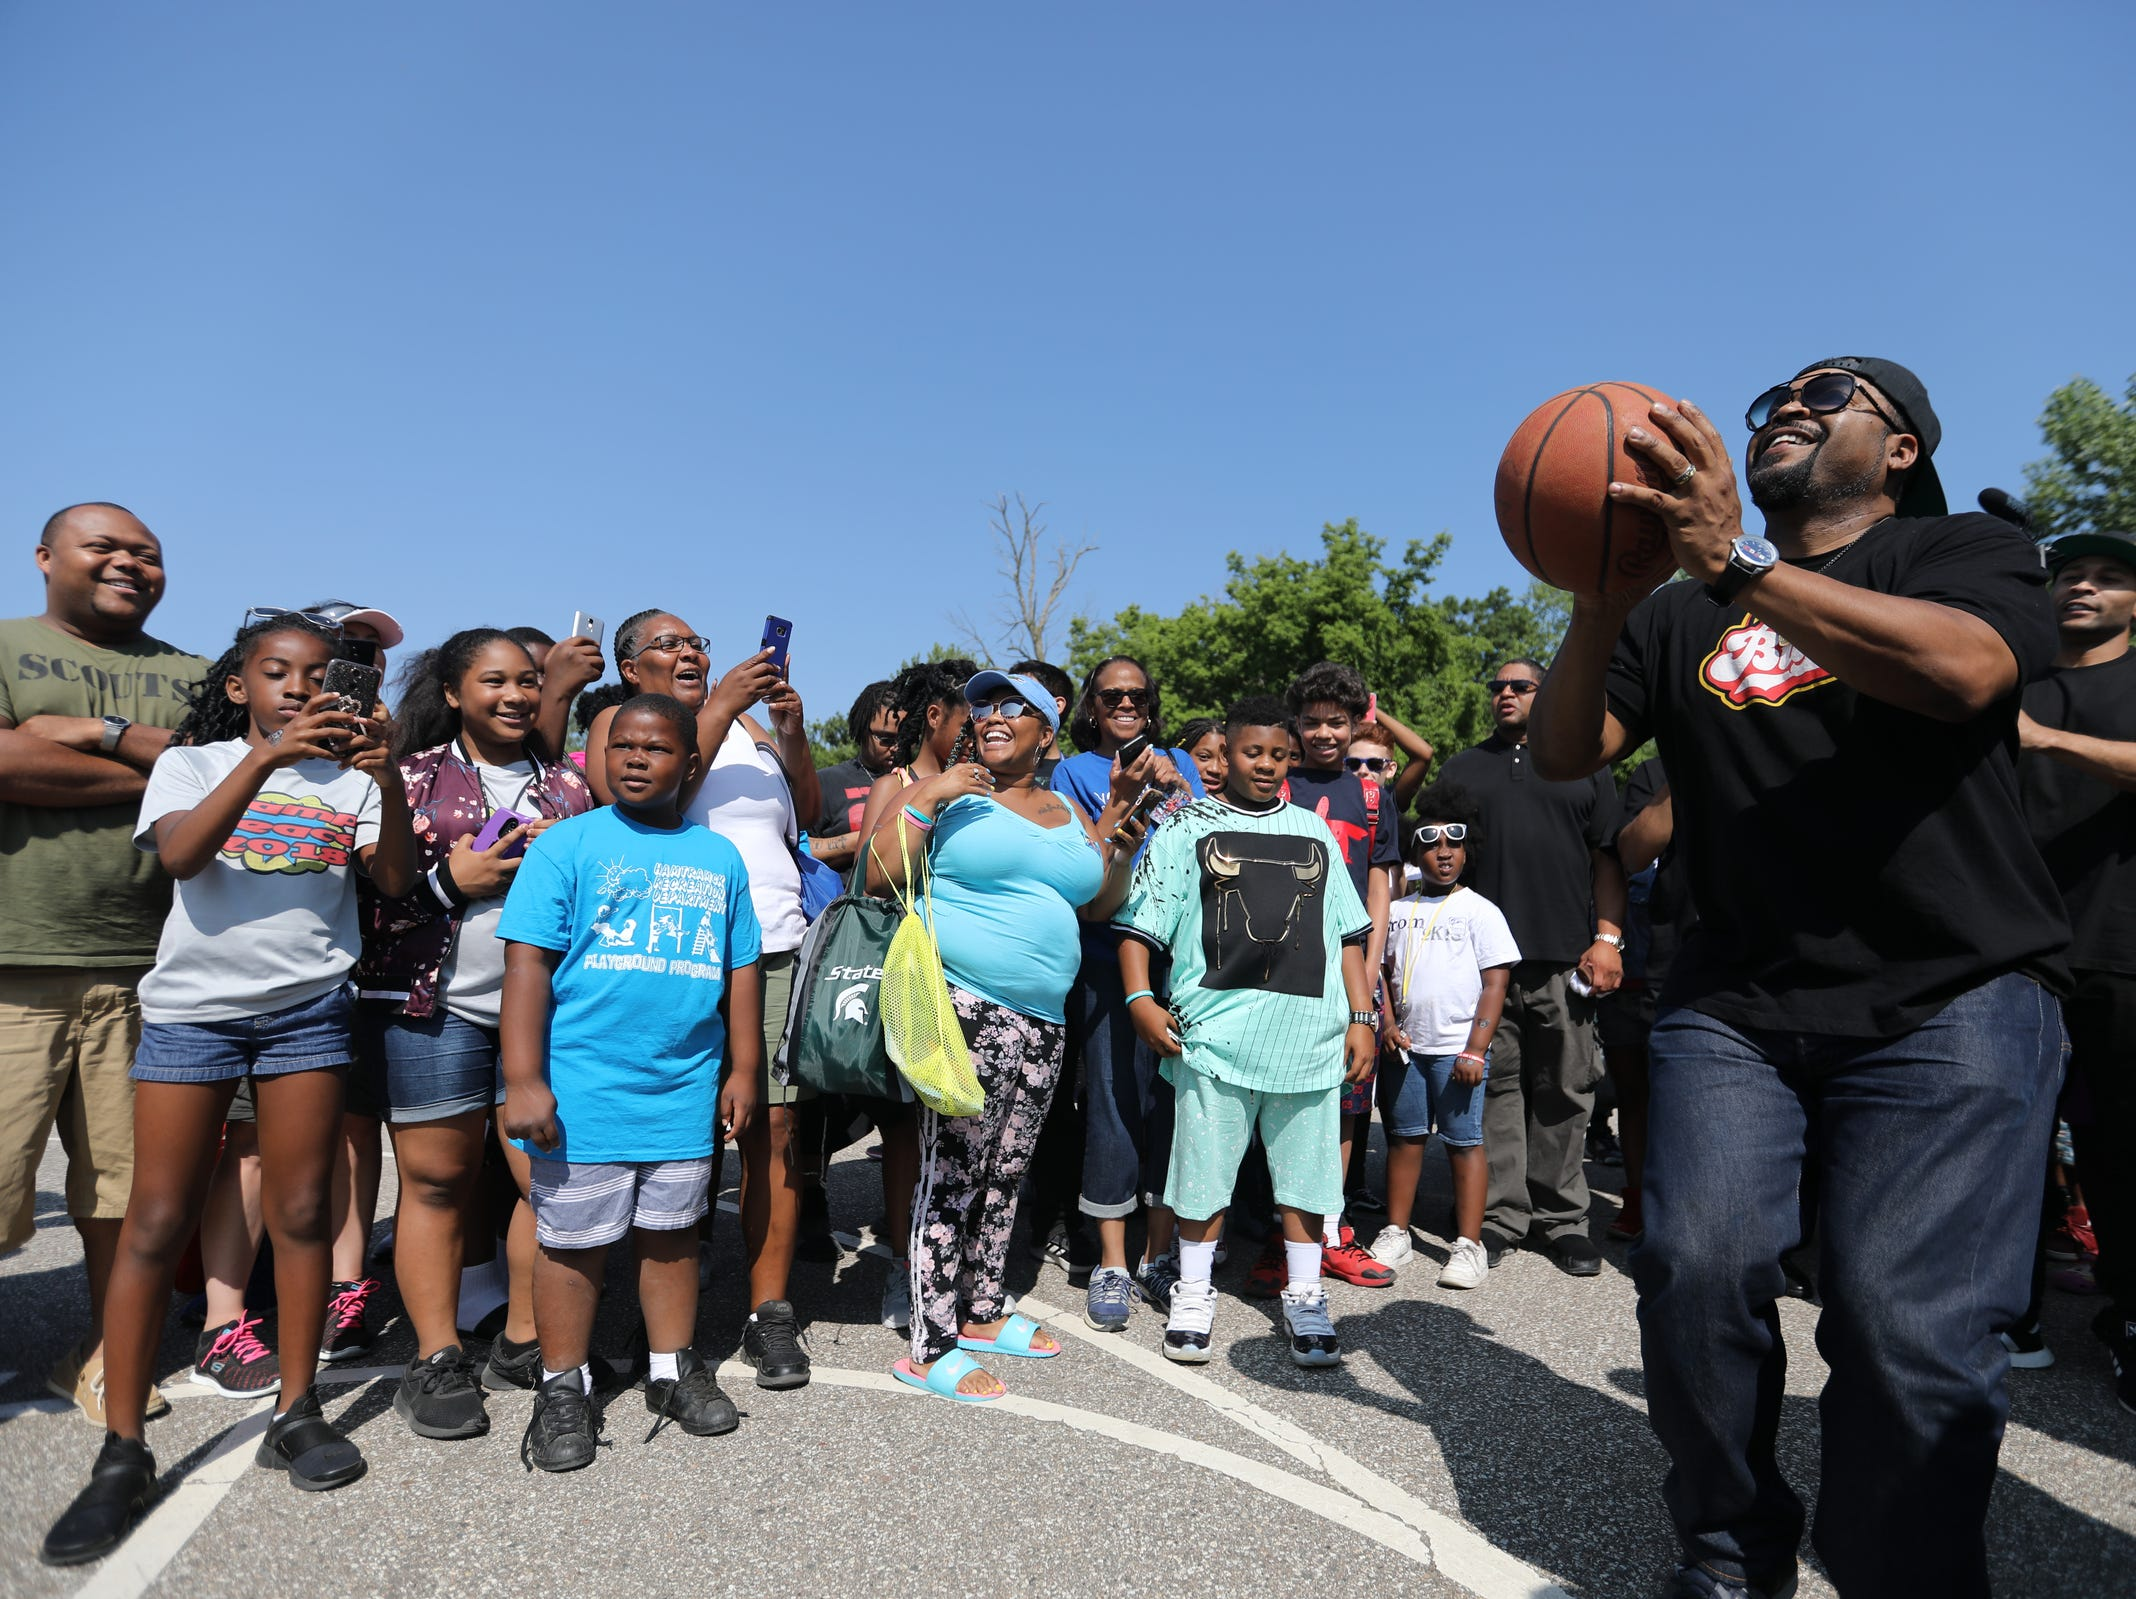 Entertainer Ice Cube attempts a three-point shot surrounded by crowds on a basketball court during Metro Detroit Youth Day at Belle Isle in Detroit on Wednesday, July 11, 2018.